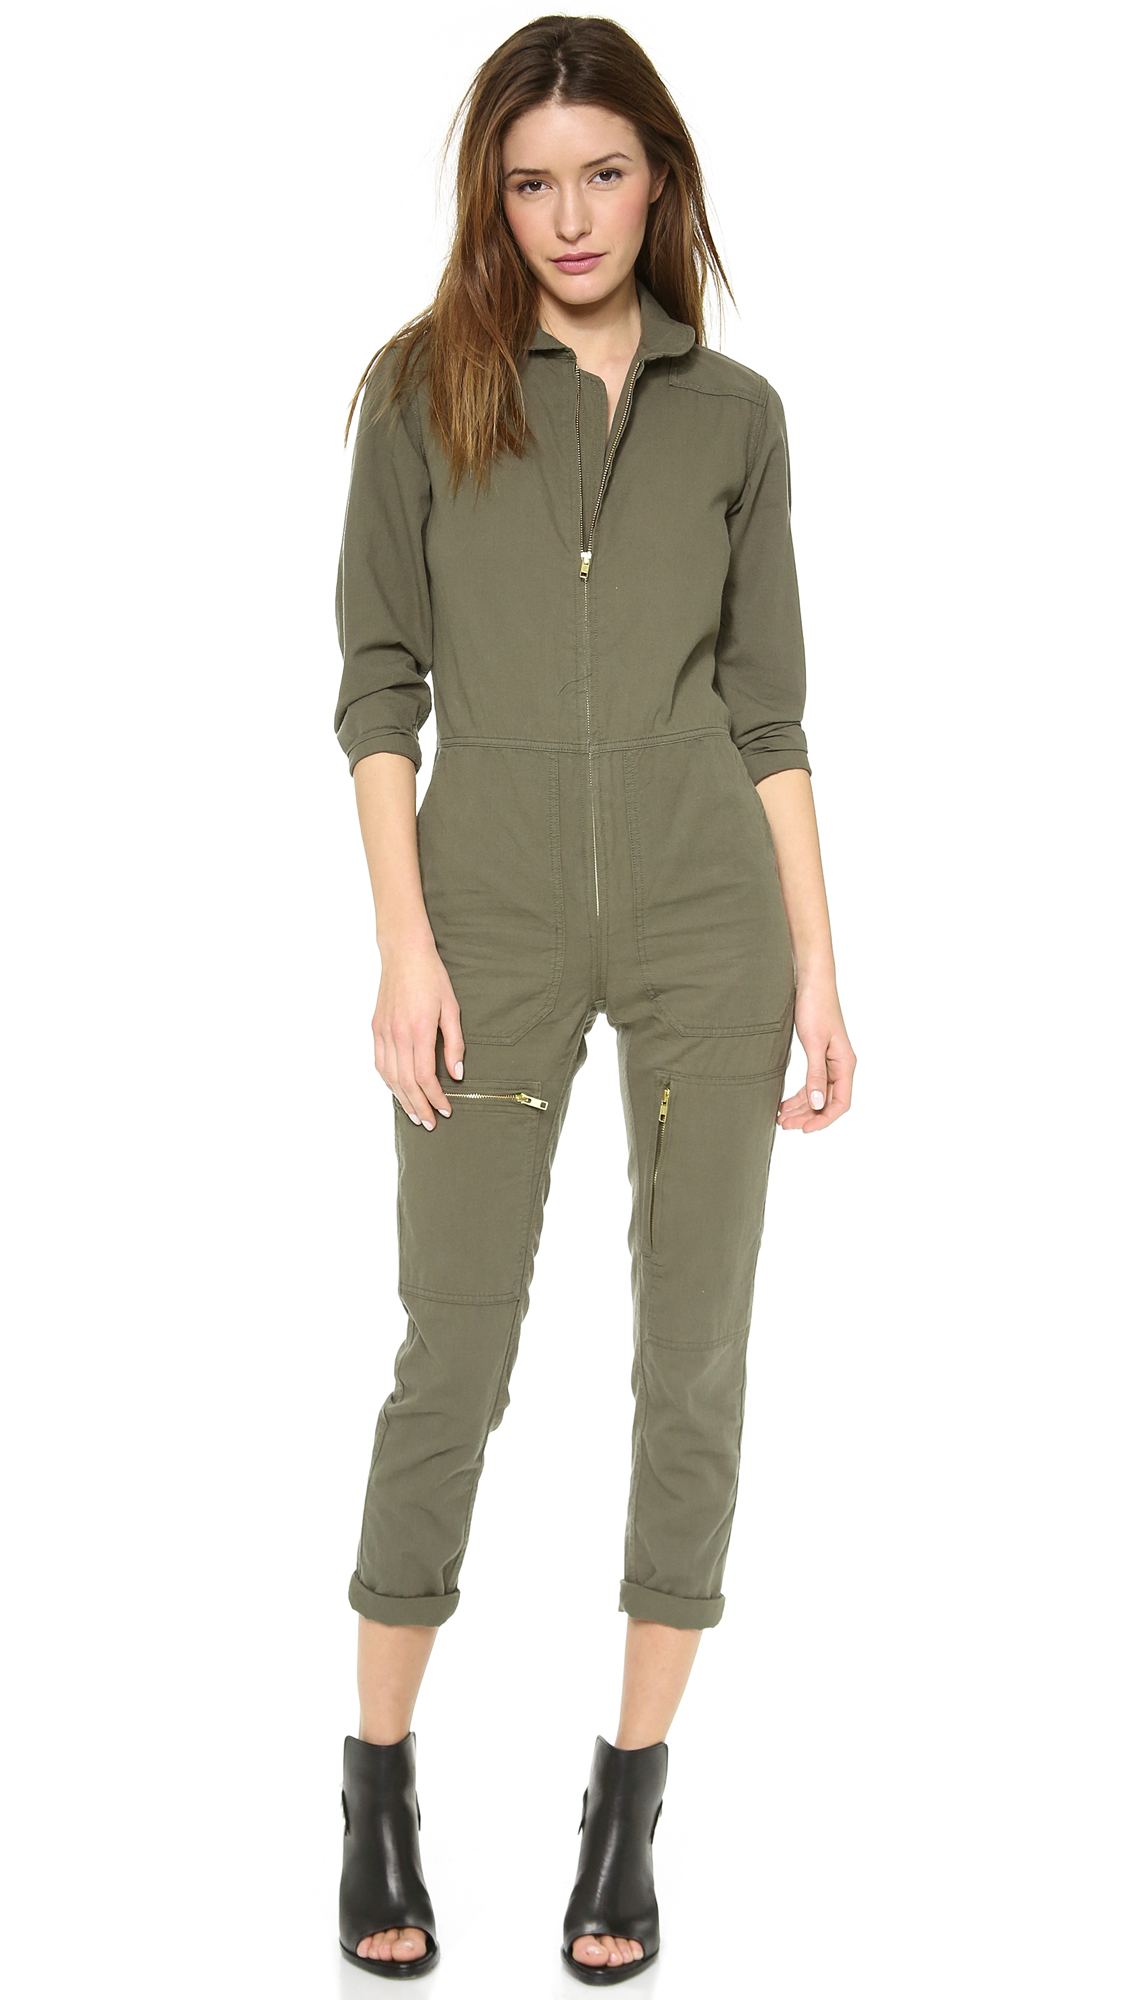 9370a60a23 Lyst - NLST Flight Jumpsuit Olive Drab in Green